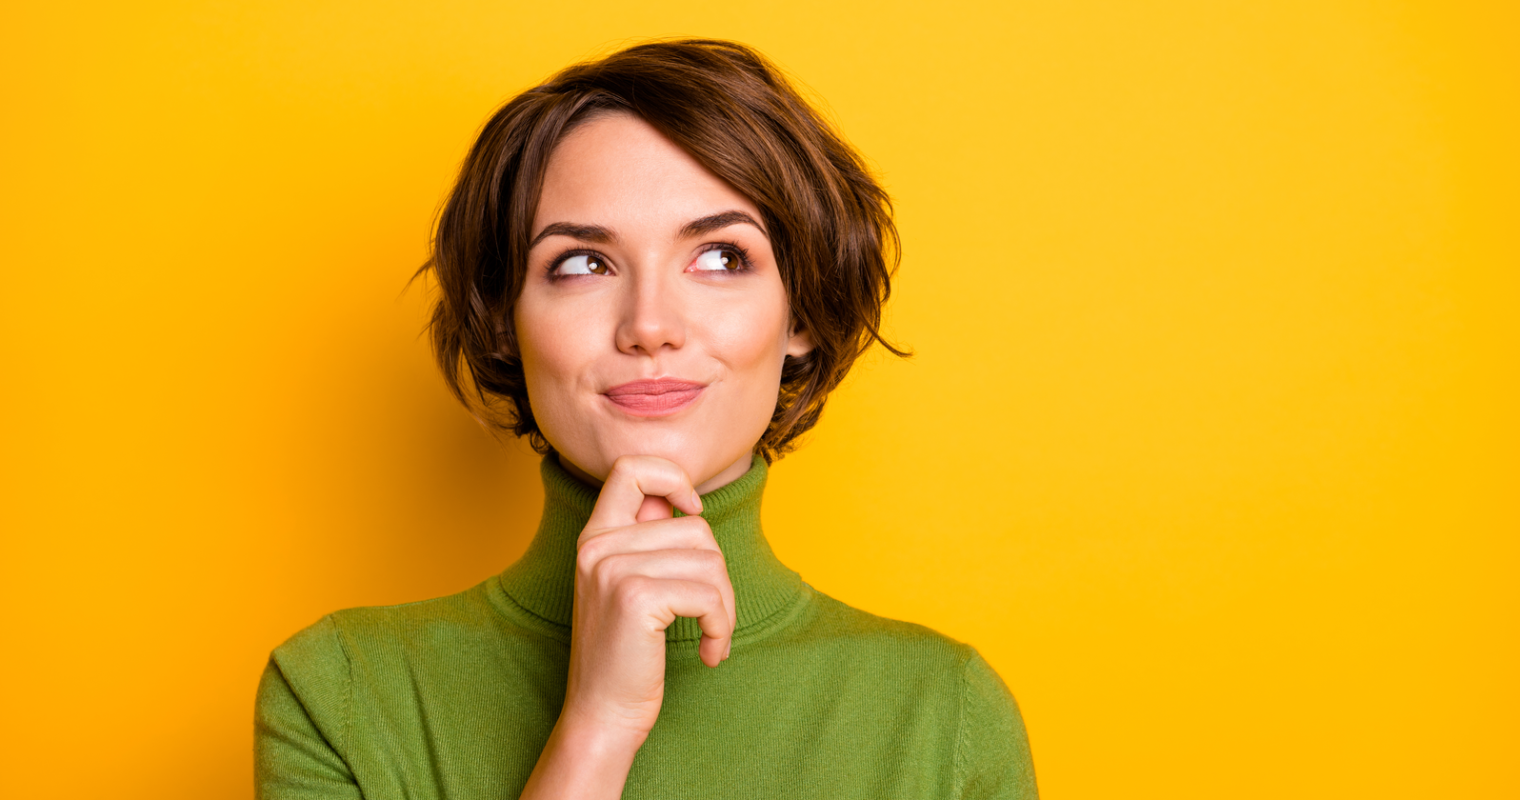 6 Customer-Centric Ways to Personalize On-Site Content